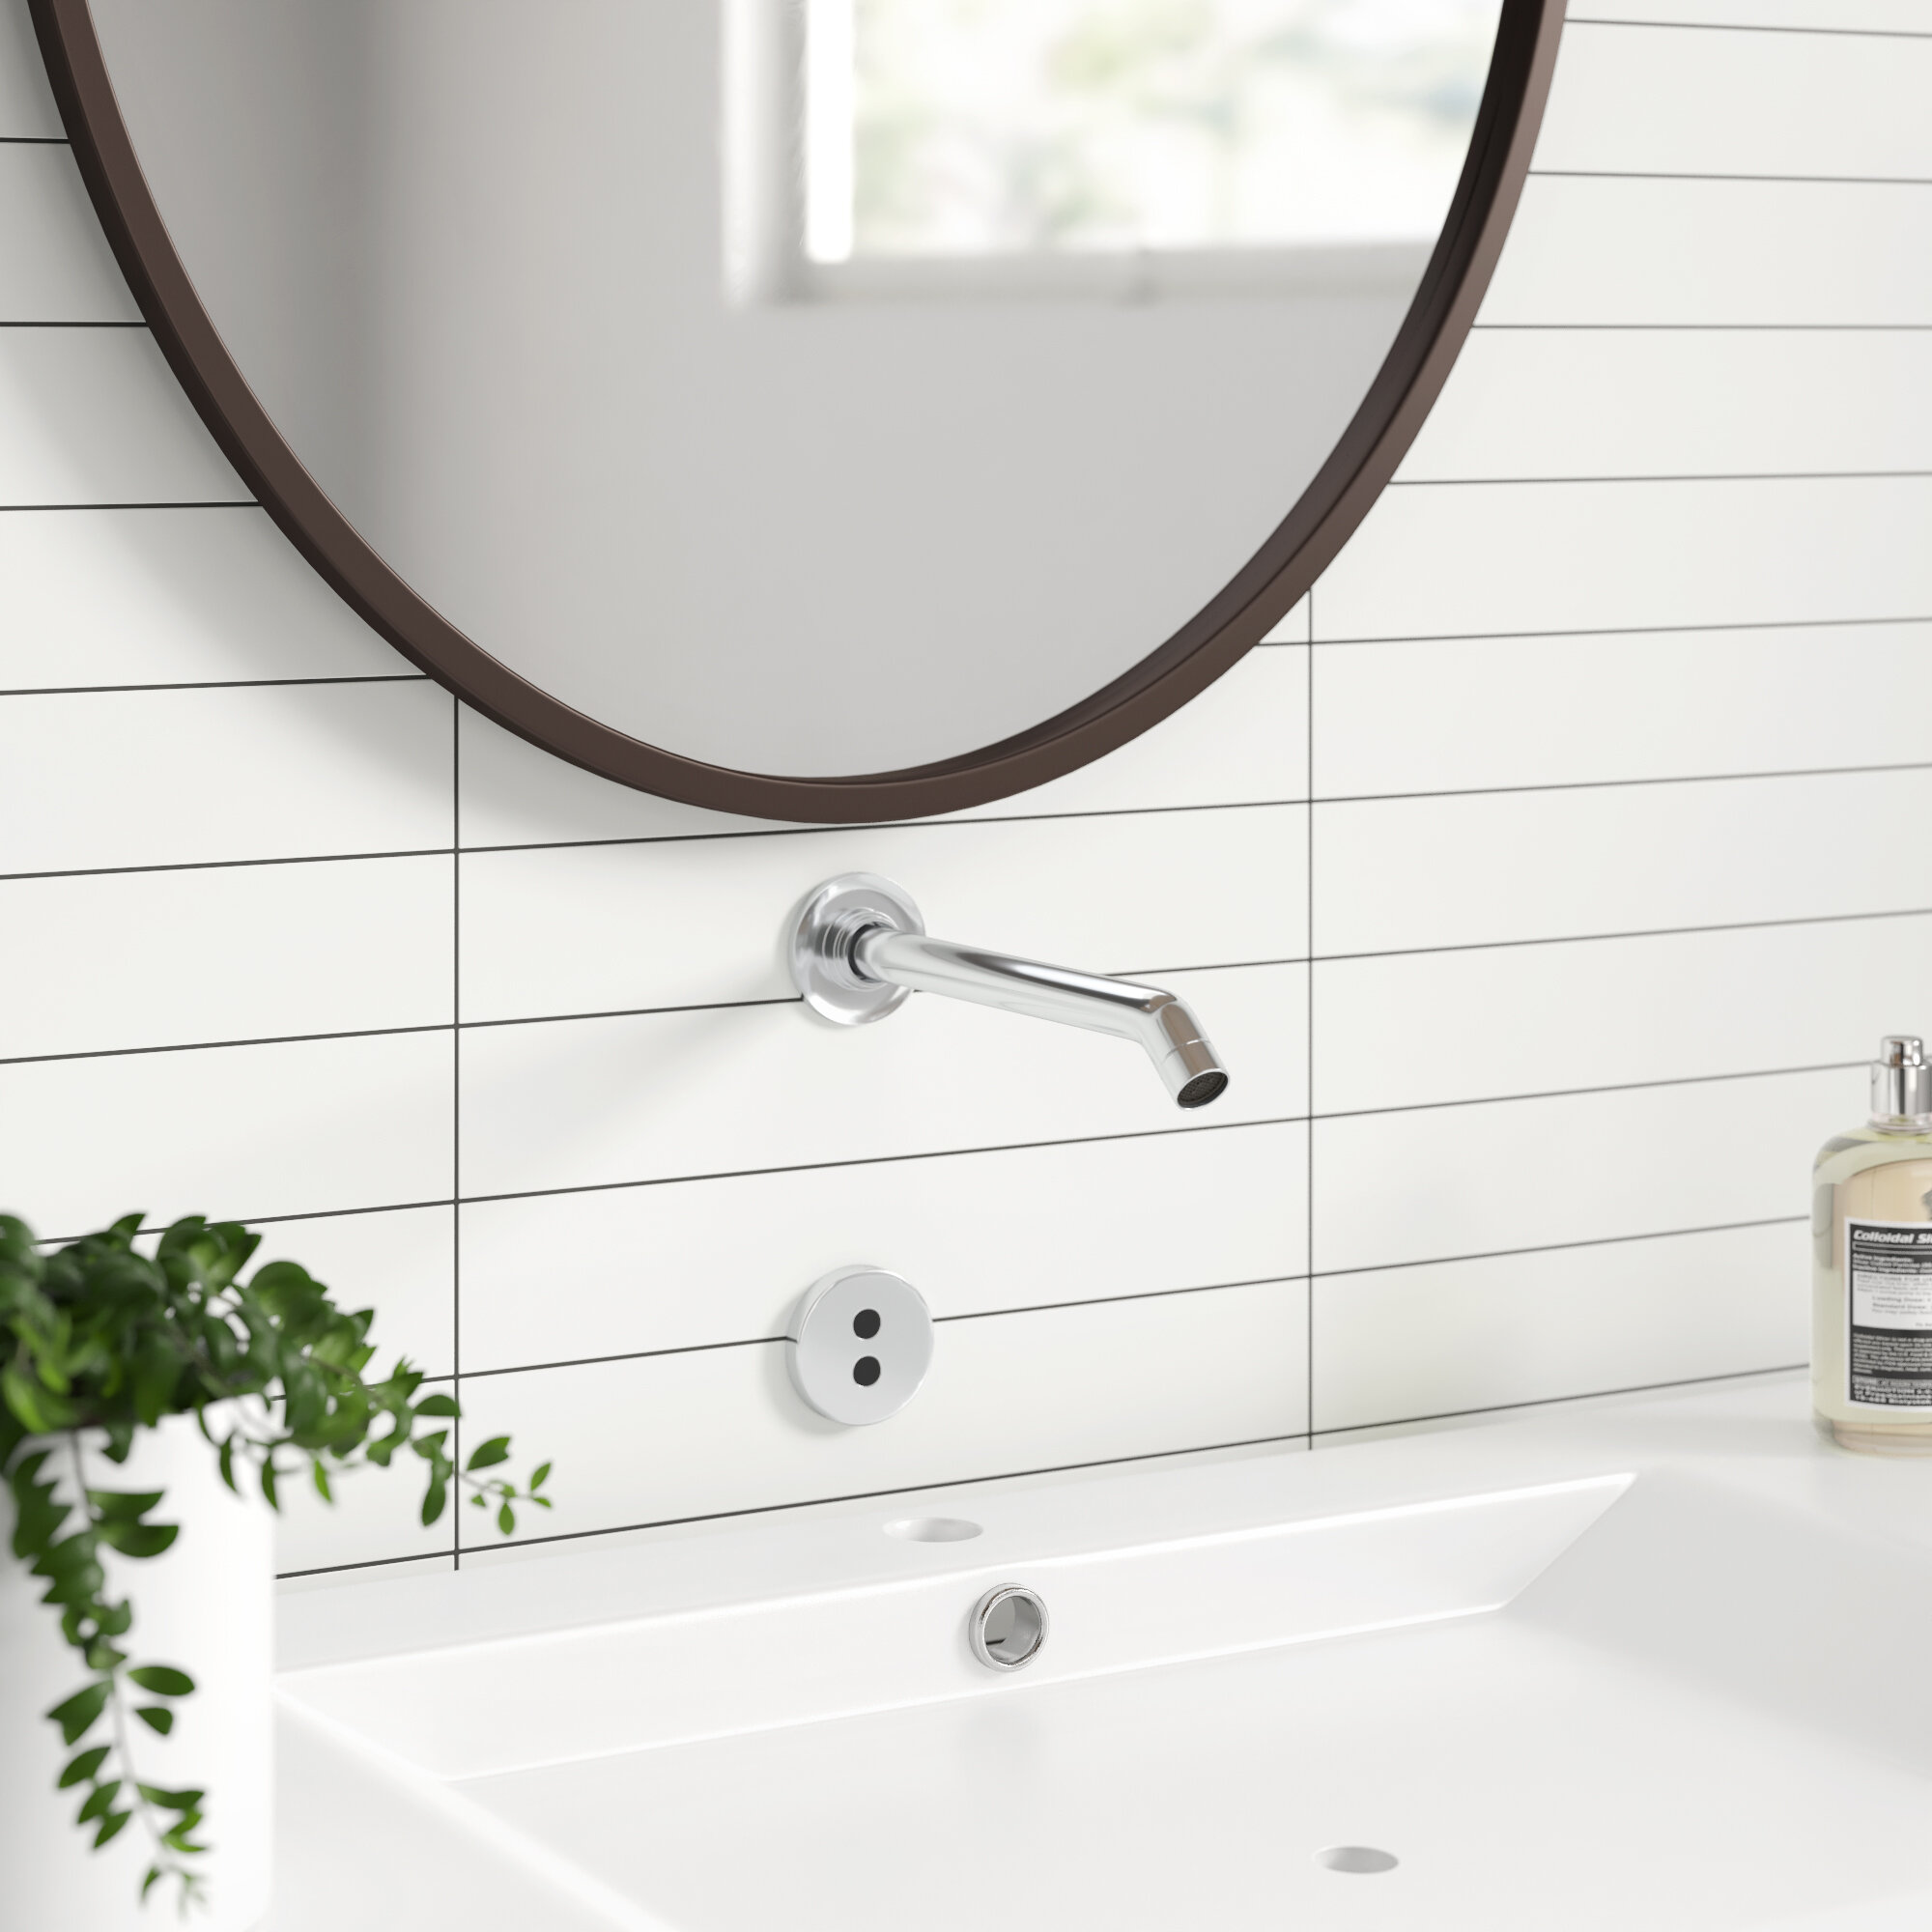 Purist Wall Mount Commercial Bathroom Sink Faucet Trim With 8 1 4 35 Degree Spout And Insight Technology Allmodern